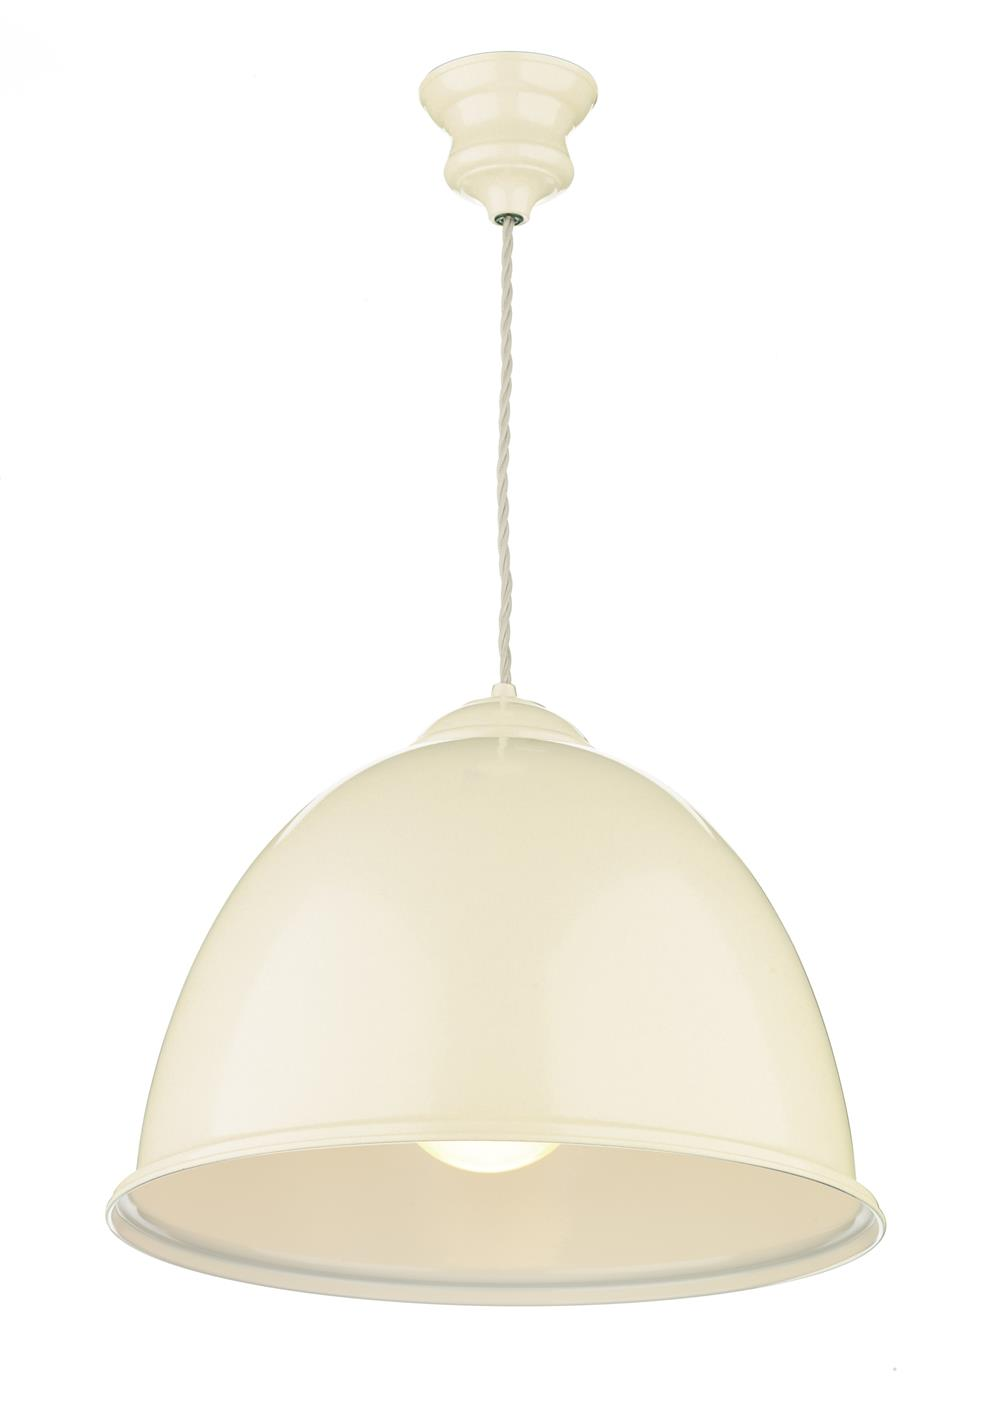 David Hunt Lighting EUS0133 Euston 1 Light Pendant in Gloss Cream with White Inner